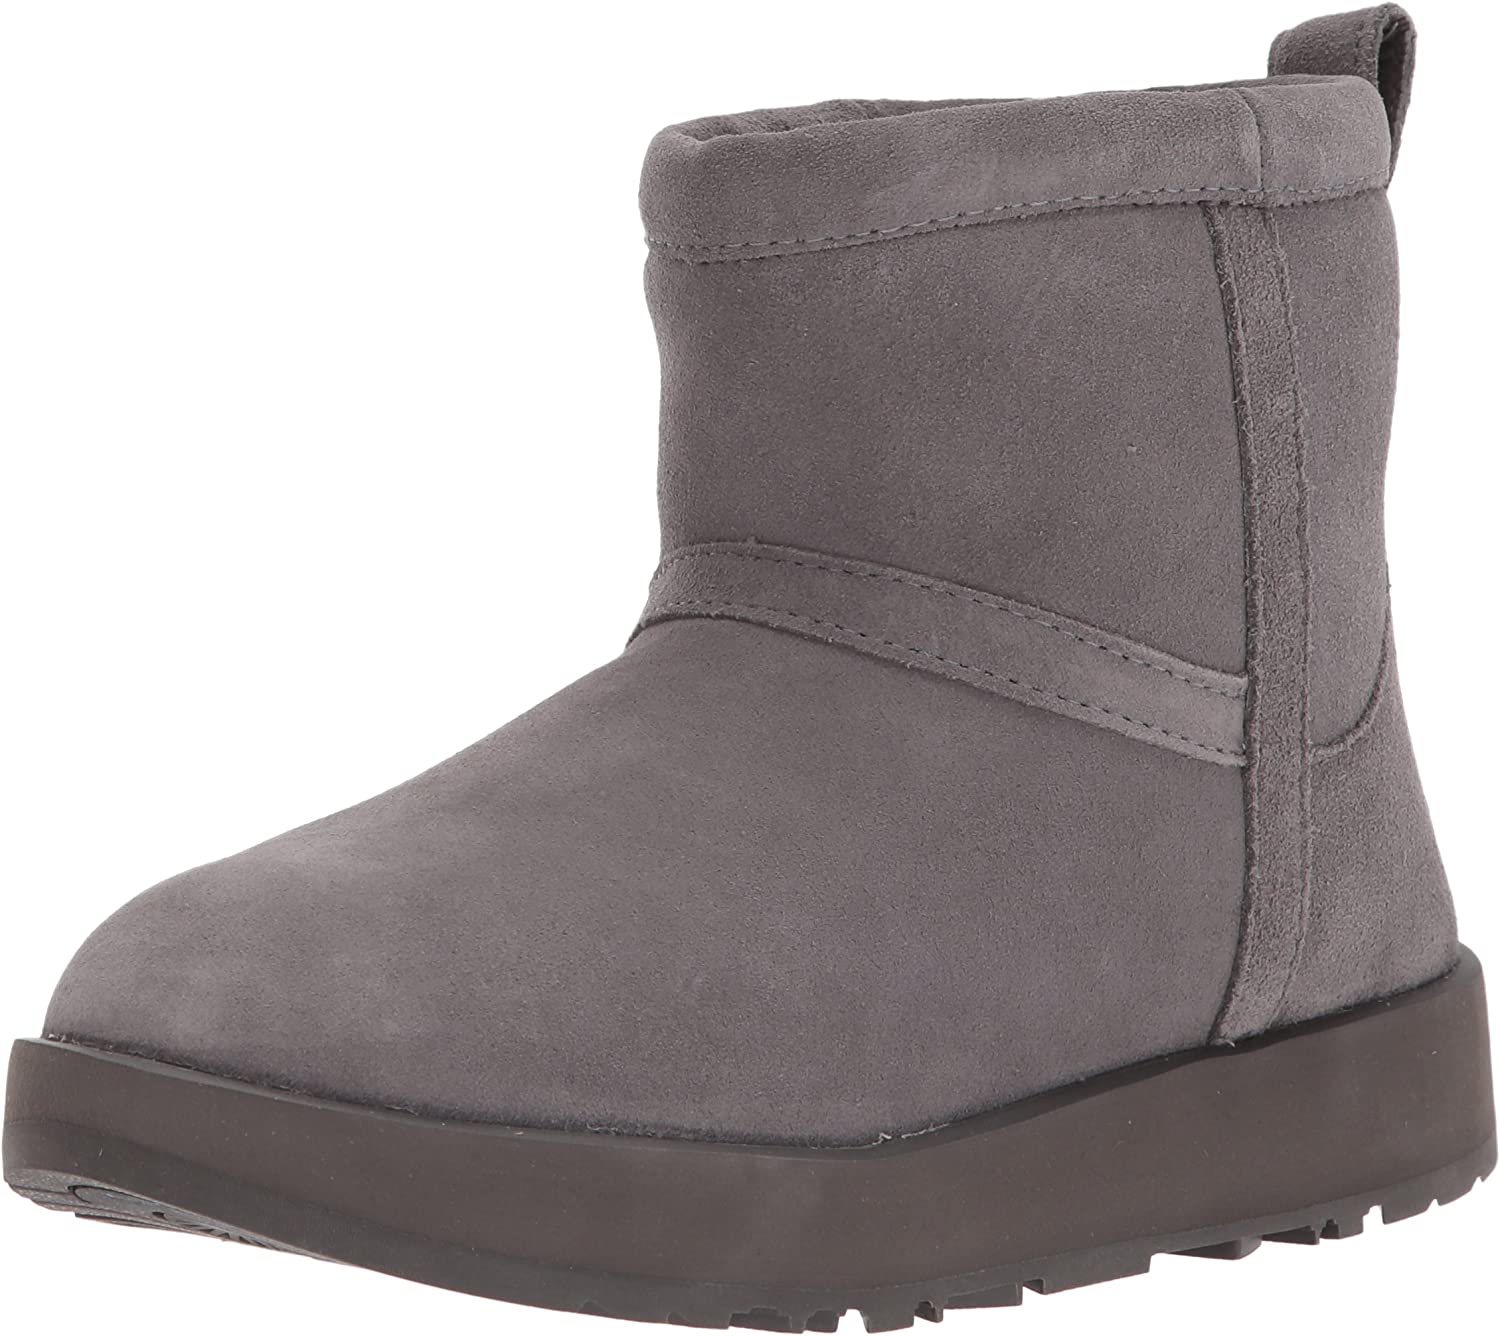 UGG Women's Classic Mini Waterproof Snow Boot